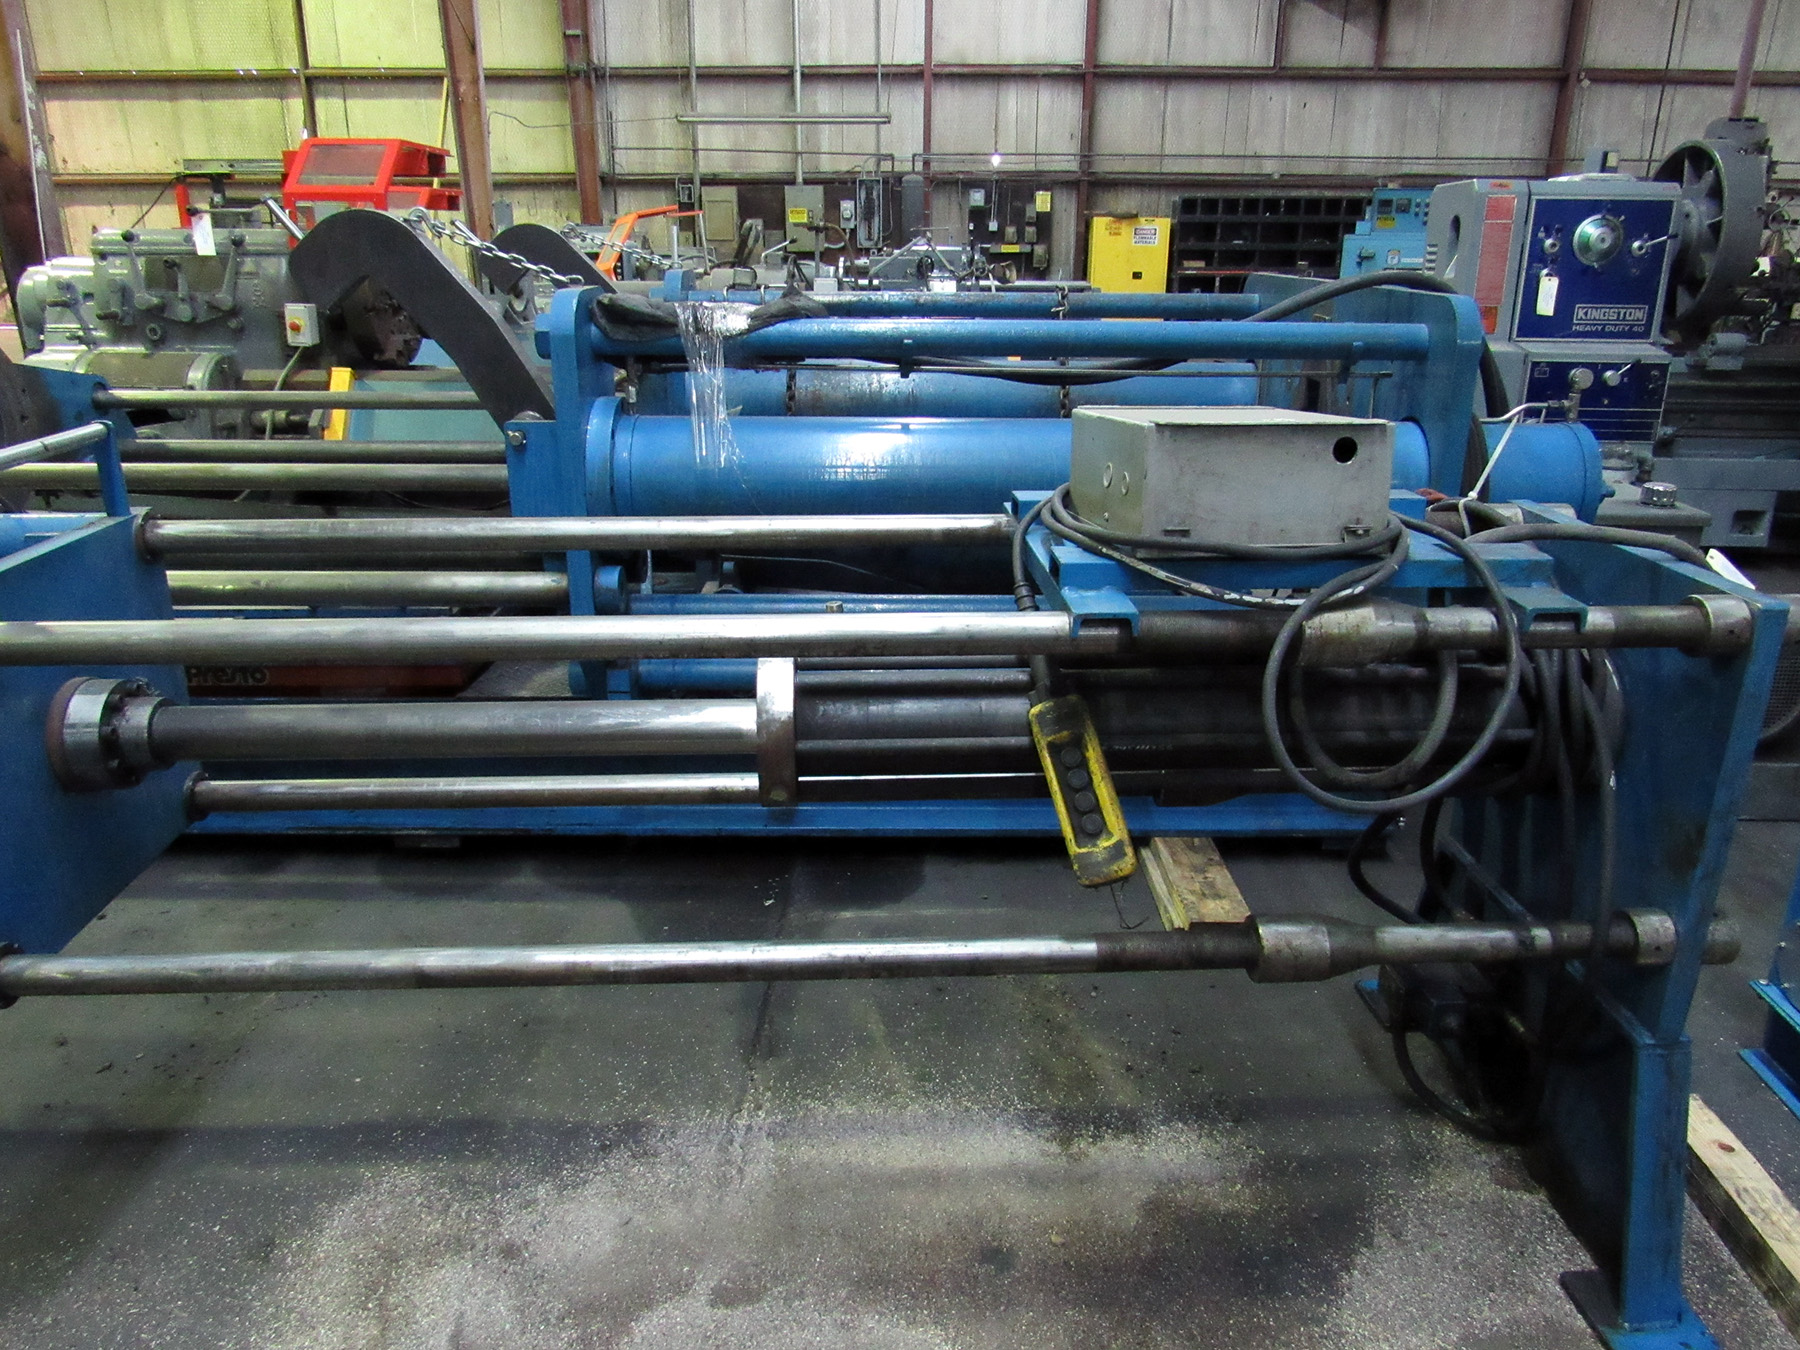 Lot 35 - PUSH/PULL SPRING COMPRESSION/FORCING PRESS, Vickers hyd. tank, 1,000 lb. hyd. lift table (LOCATION